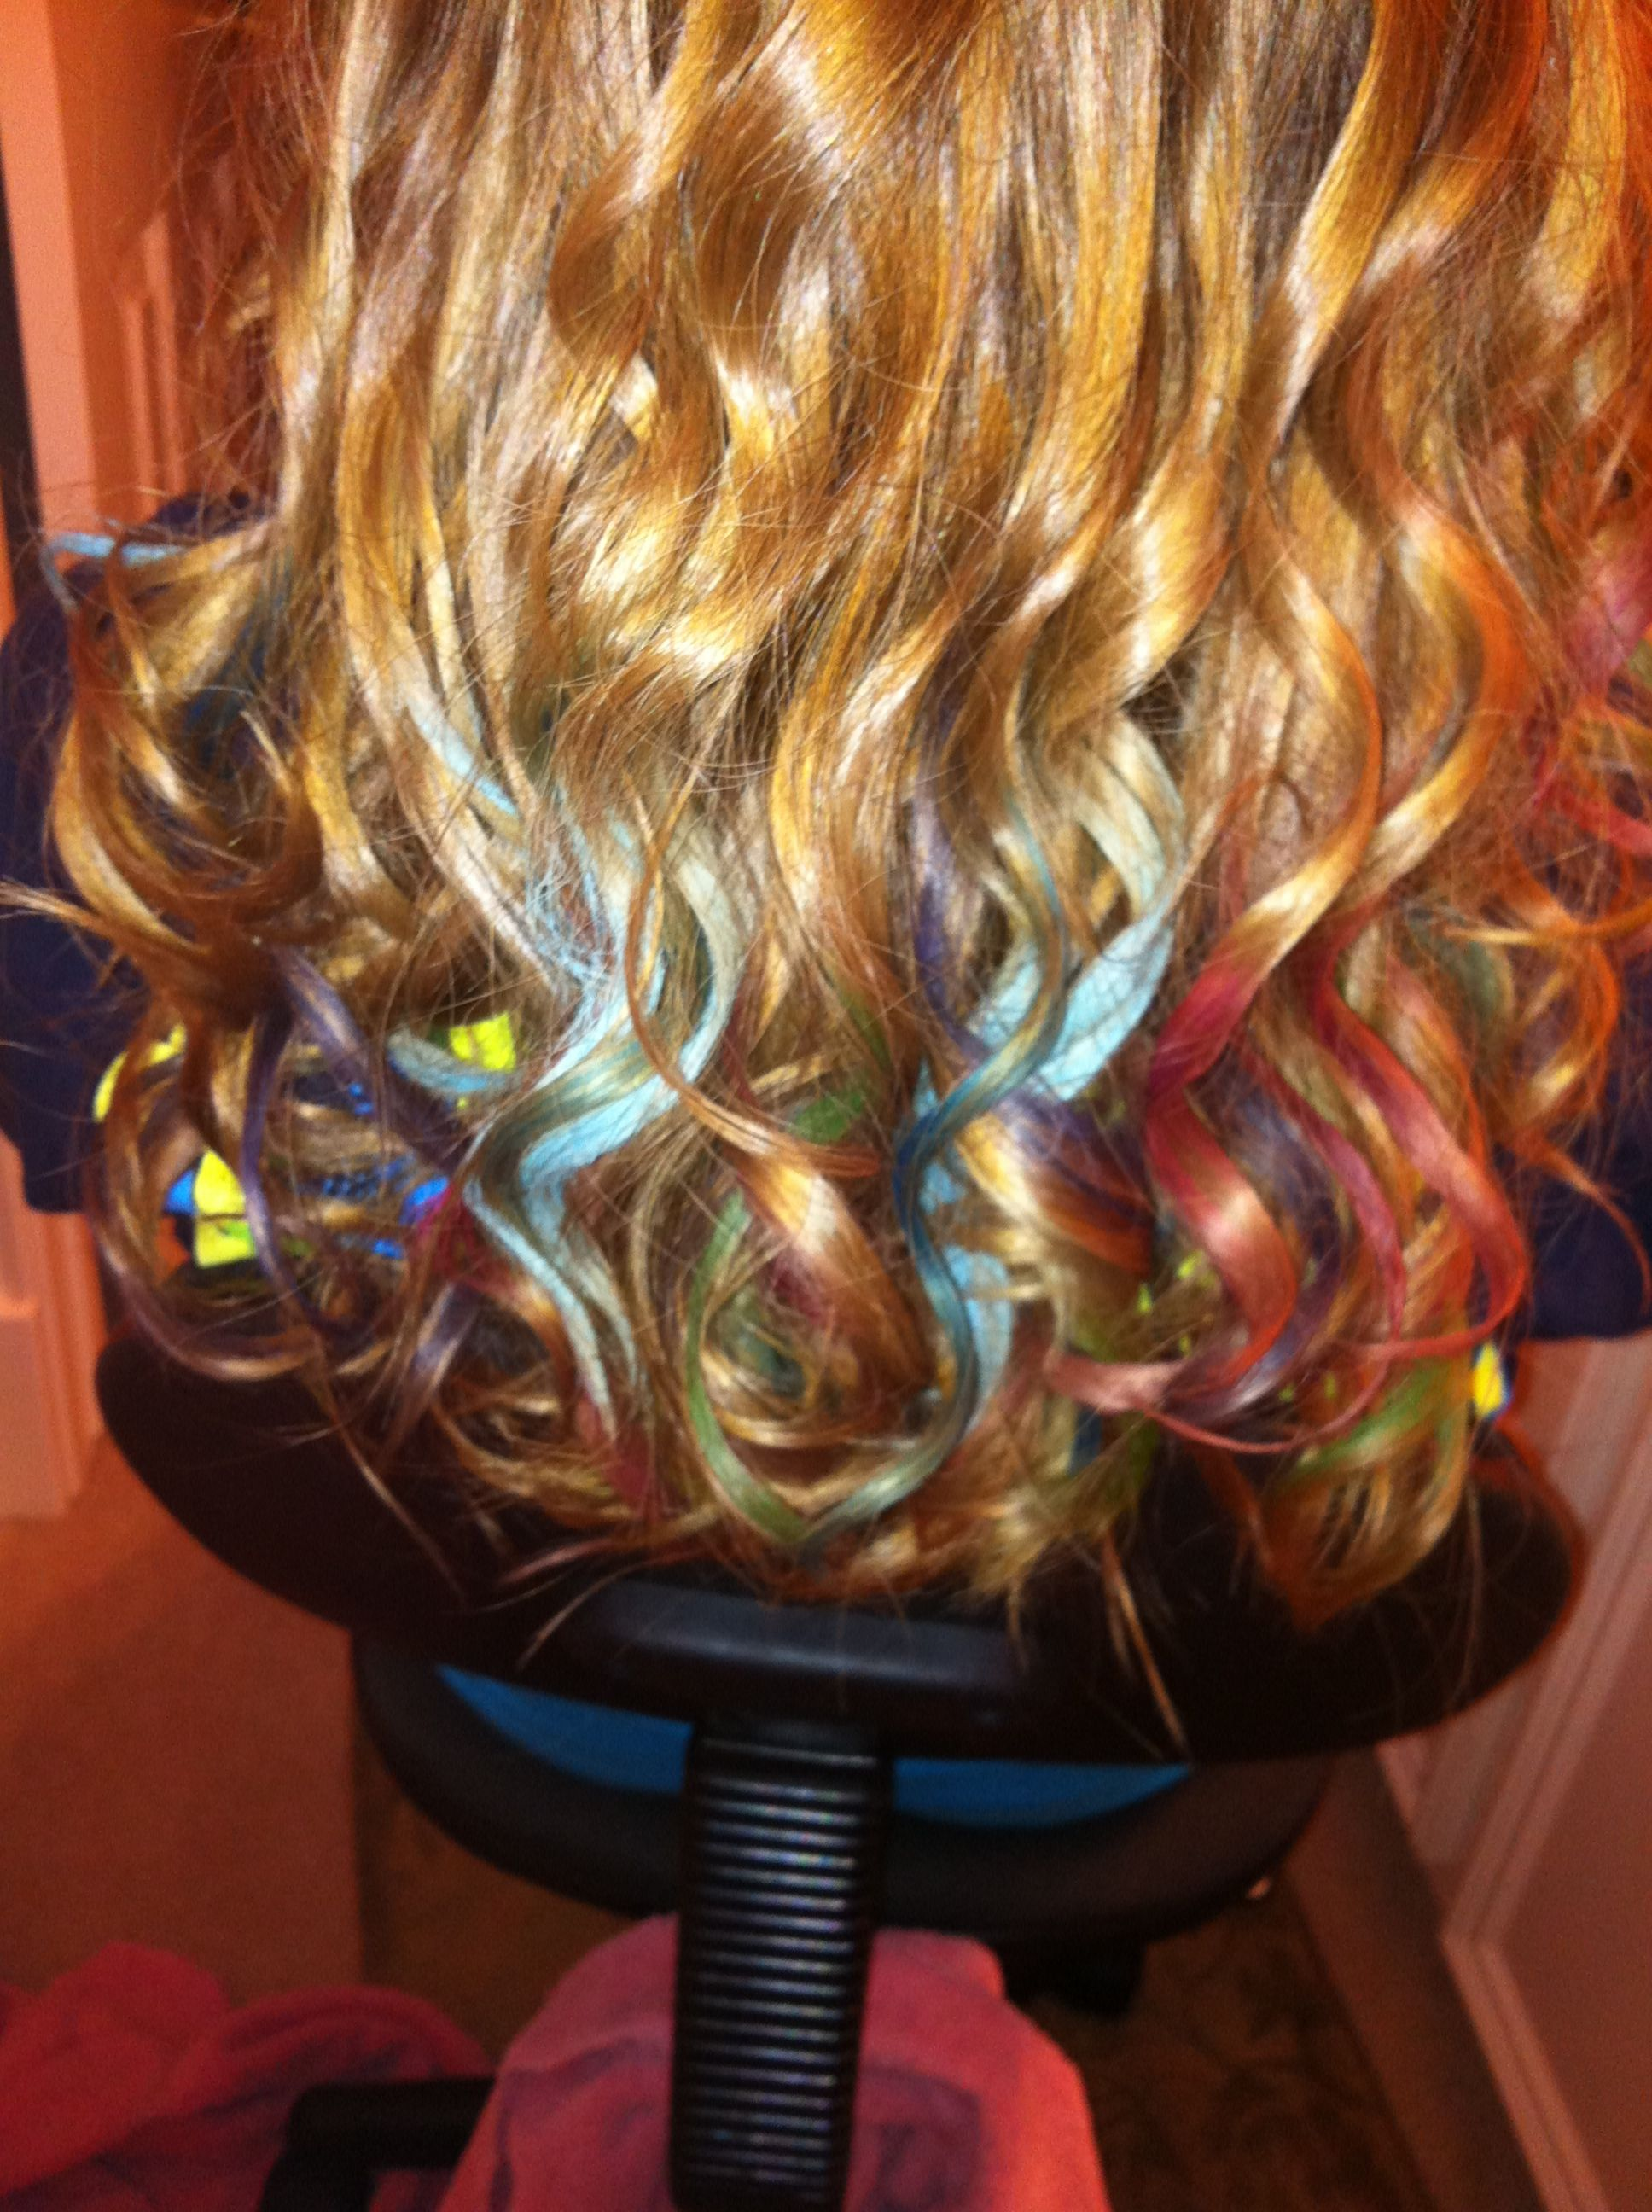 Hair chalking. It's actually done with oil pastels. Just rub the pastel crayon on a small, damp section of hair. Then hit it with the curling iron. This looks awesome!